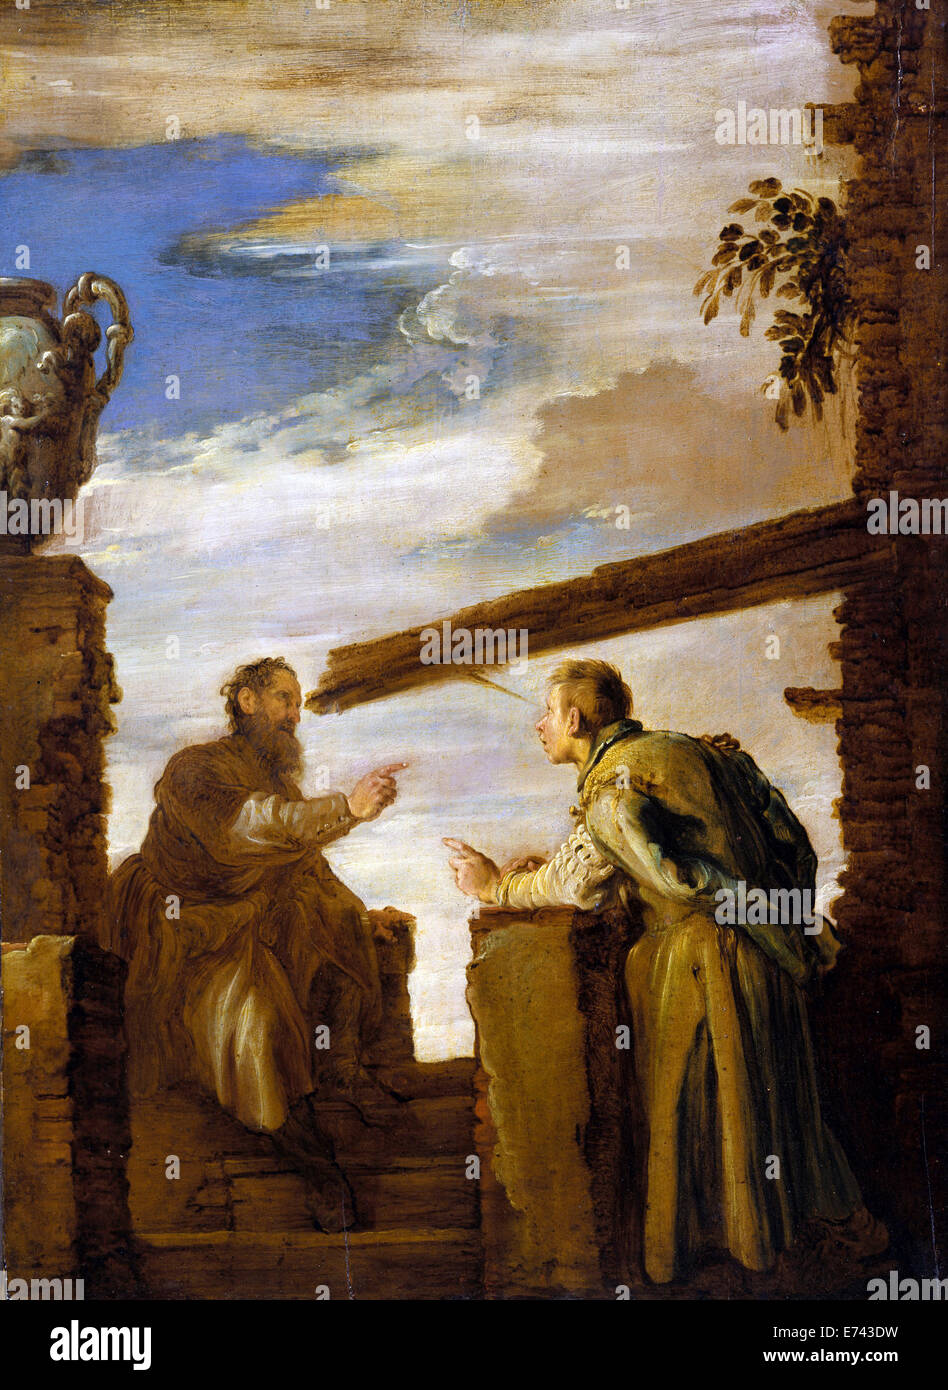 Parable of the Mote and the Beam - by Domenico Fetti, 1619 - Stock Image